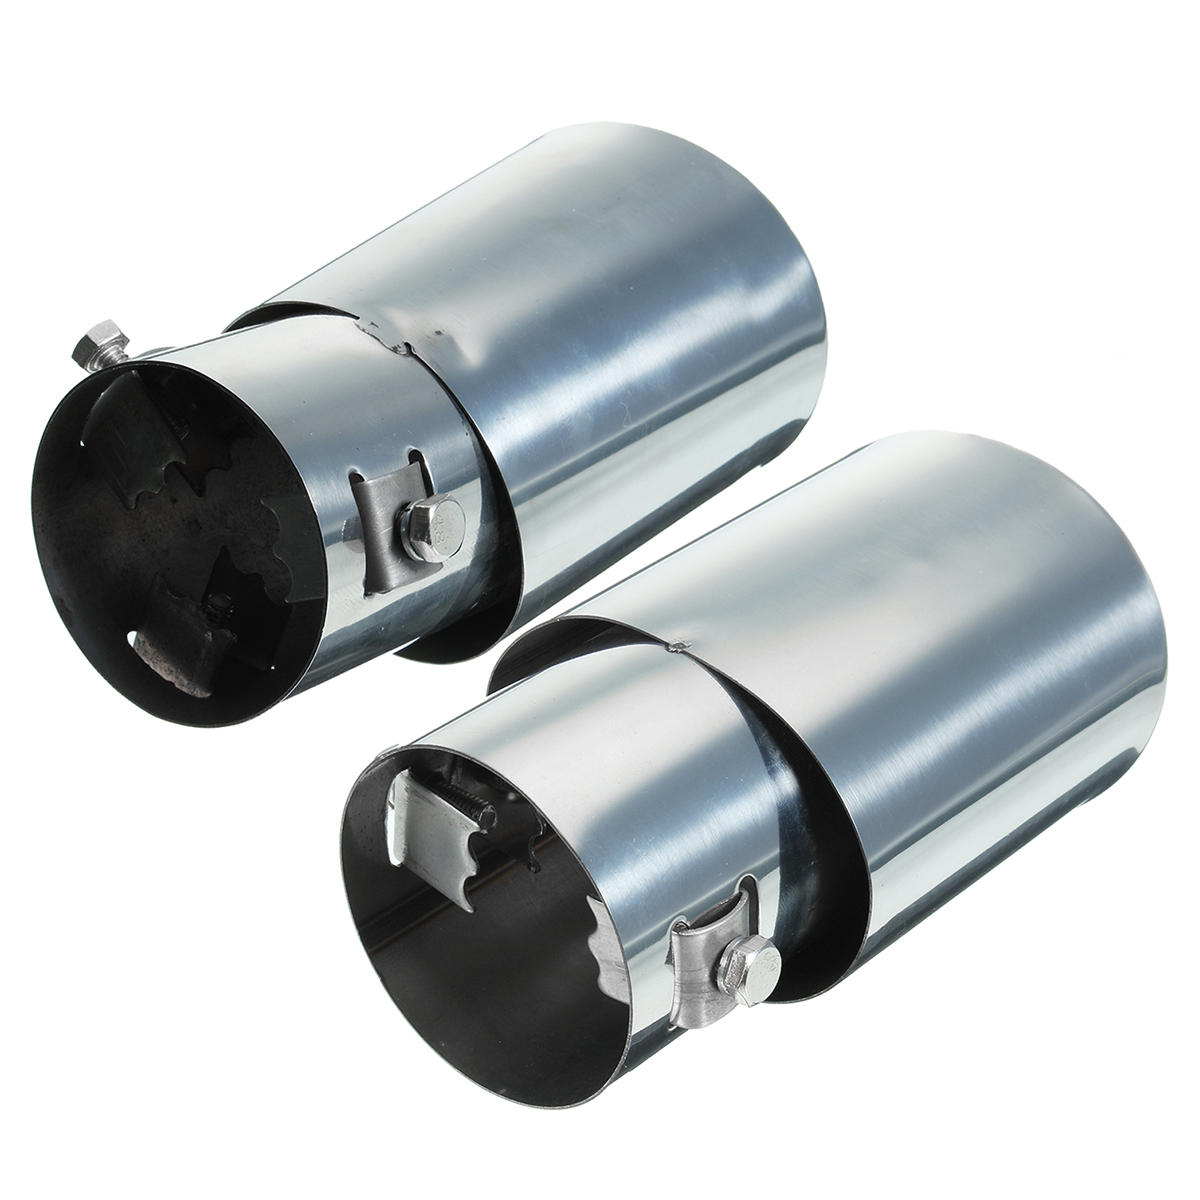 Universal Car Exhause Muffler Stainless Steel Pipe Modified Rear Tail Throat